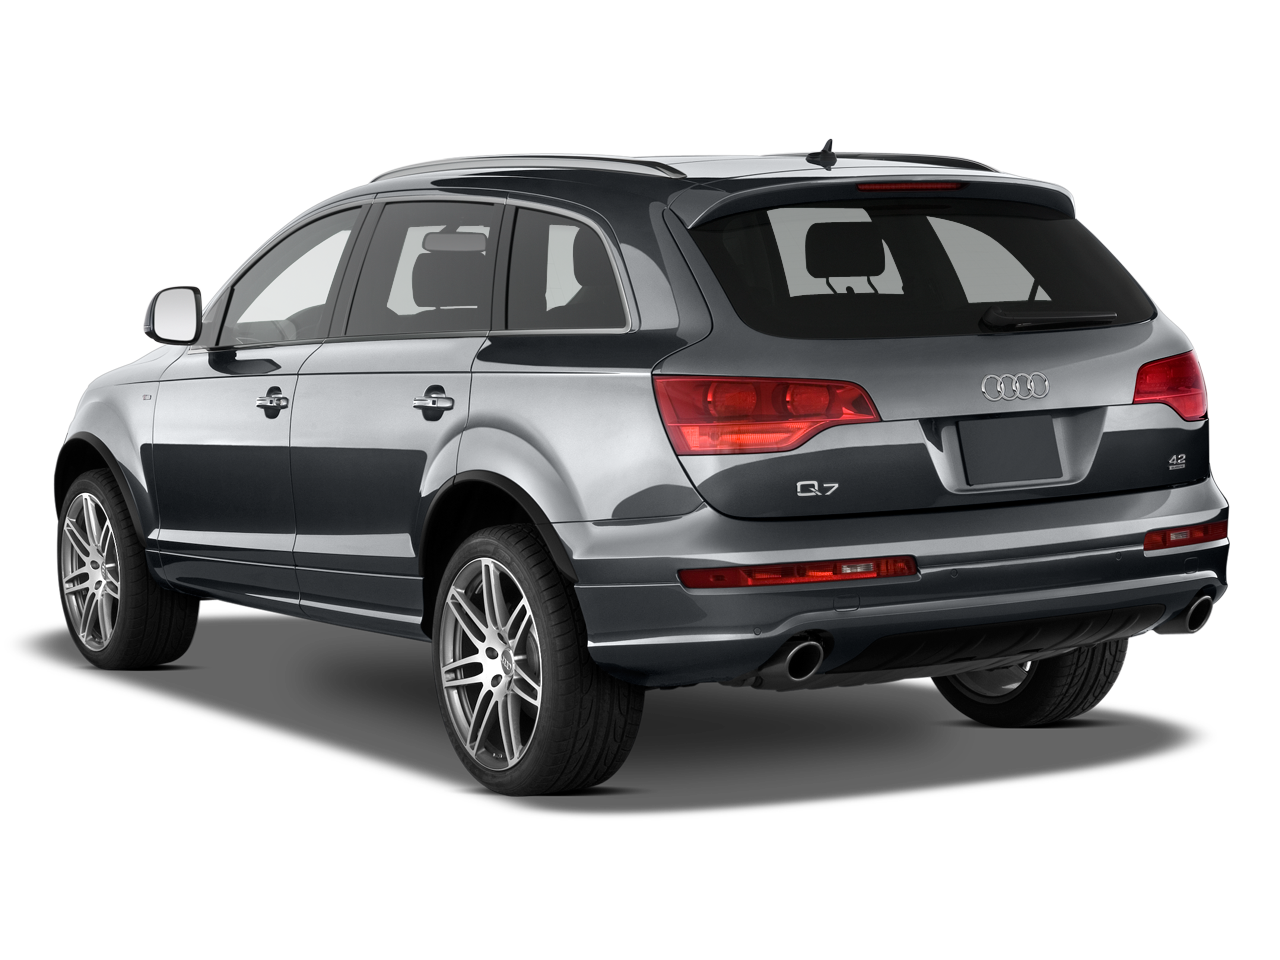 2009 audi q7 3 0 tdi quattro fuel efficient news car features and reviews automobile magazine. Black Bedroom Furniture Sets. Home Design Ideas